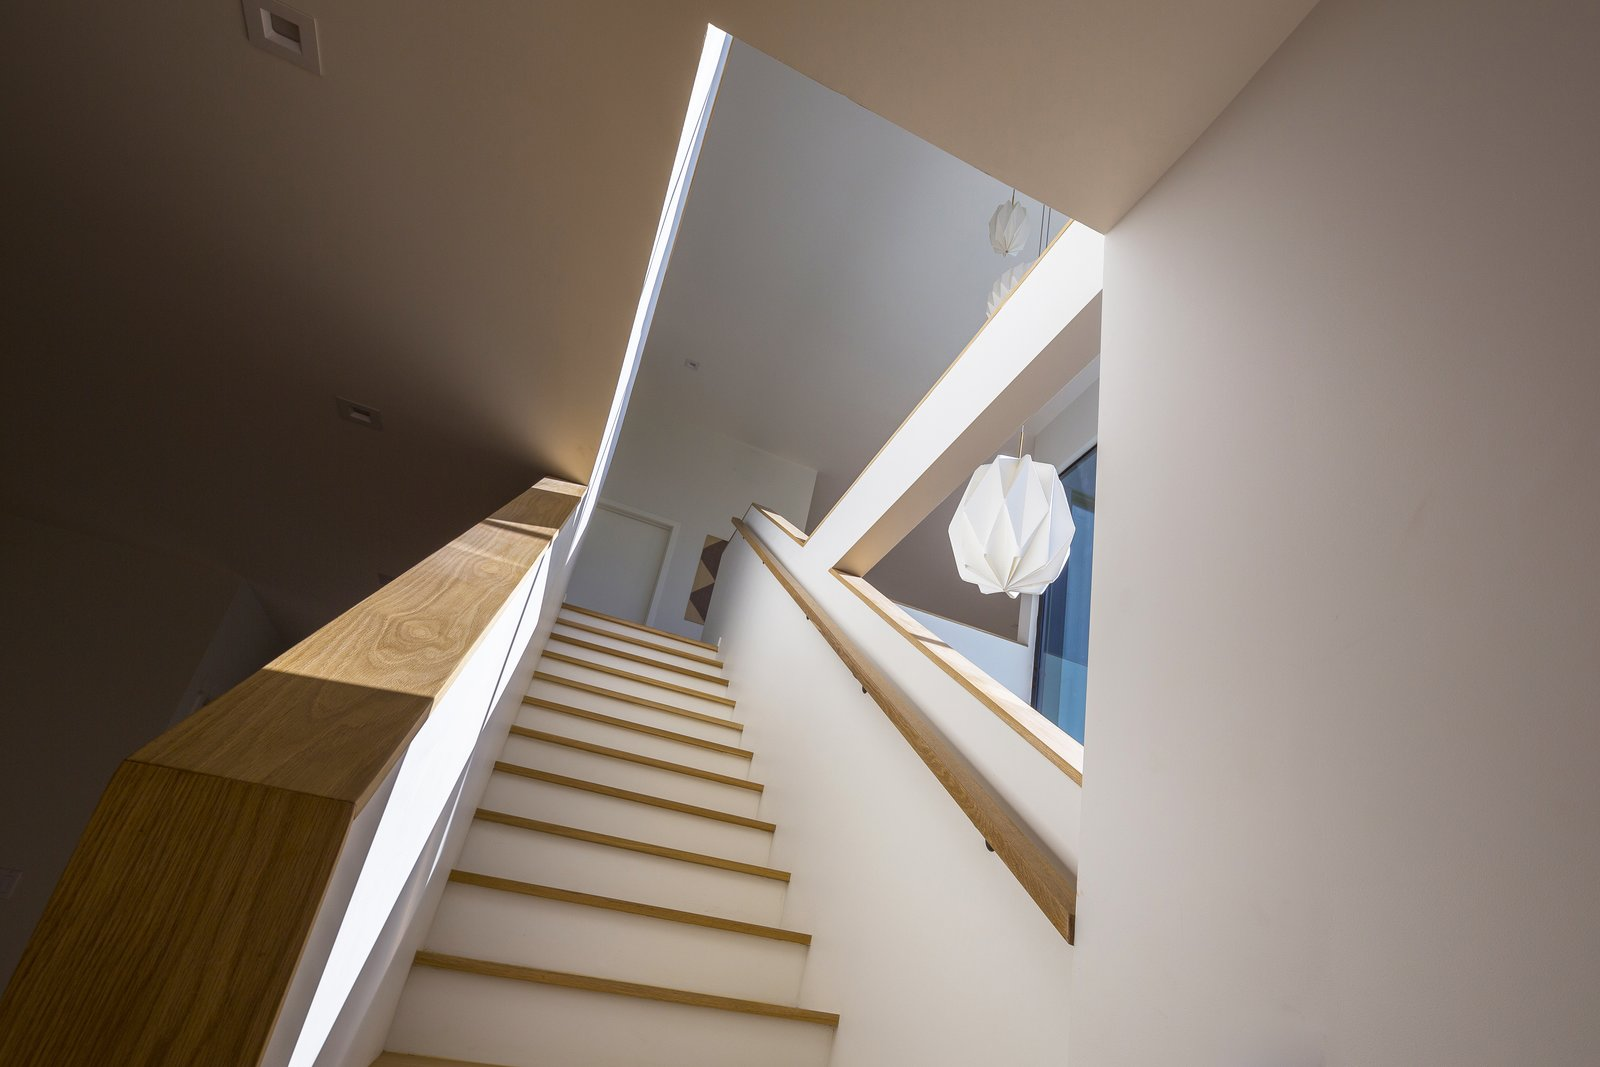 Staircase, Wood Railing, and Wood Tread Stair Volume  SL House by ANX / Aaron Neubert Architects